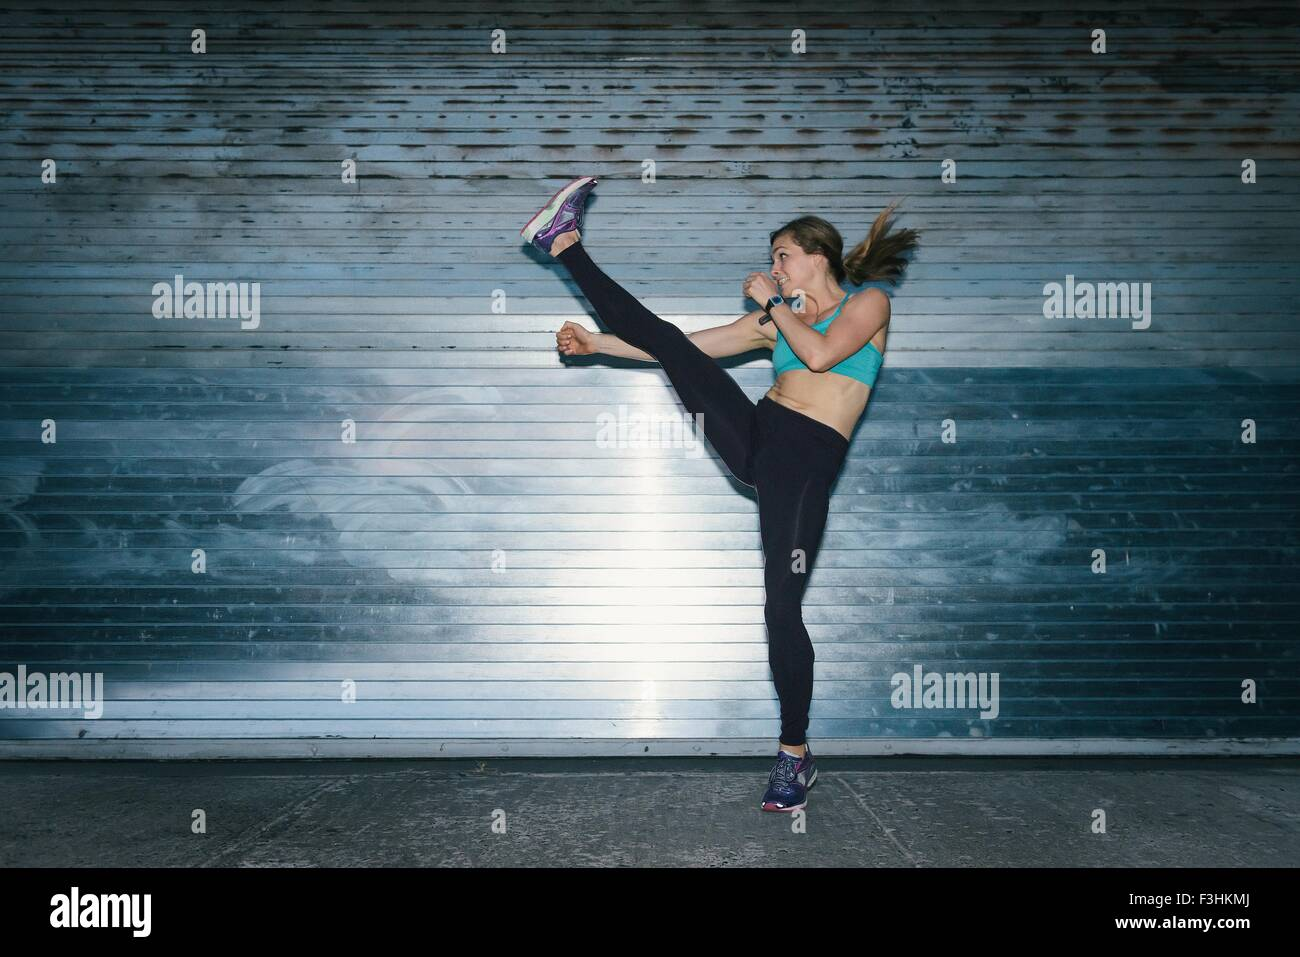 Young woman, working out, doing high kick, outdoors, at night - Stock Image